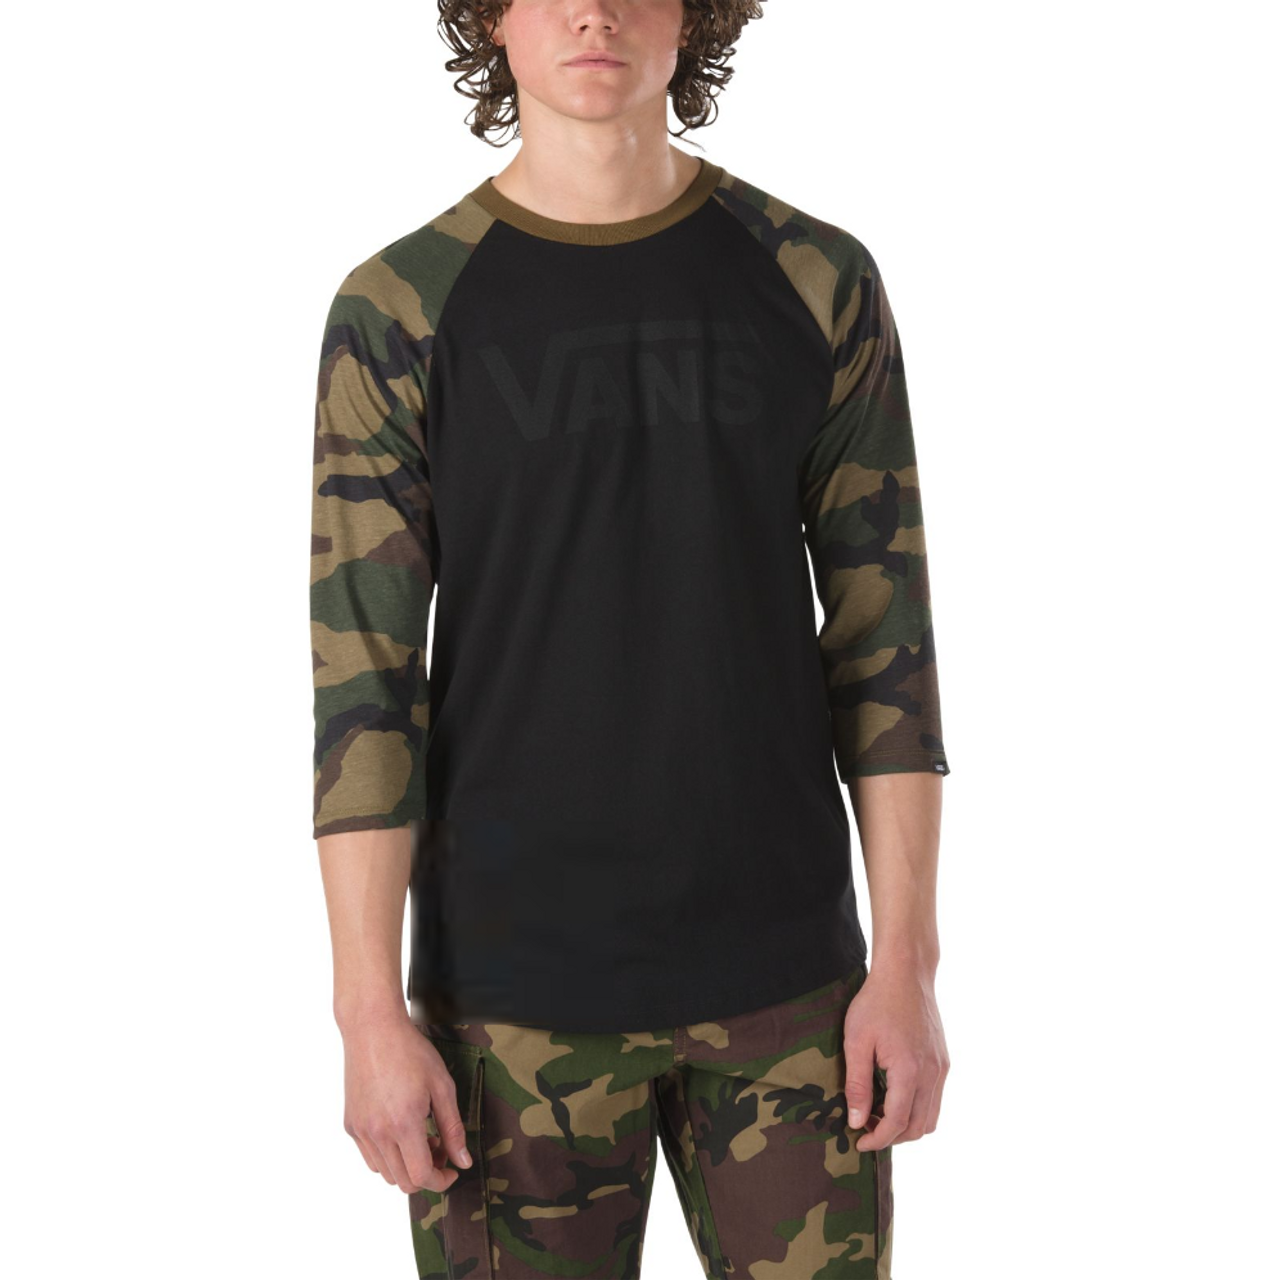 9ba797fd4a Vans Shirt - Vans Classic Raglan - Black Camo - Surf and Dirt